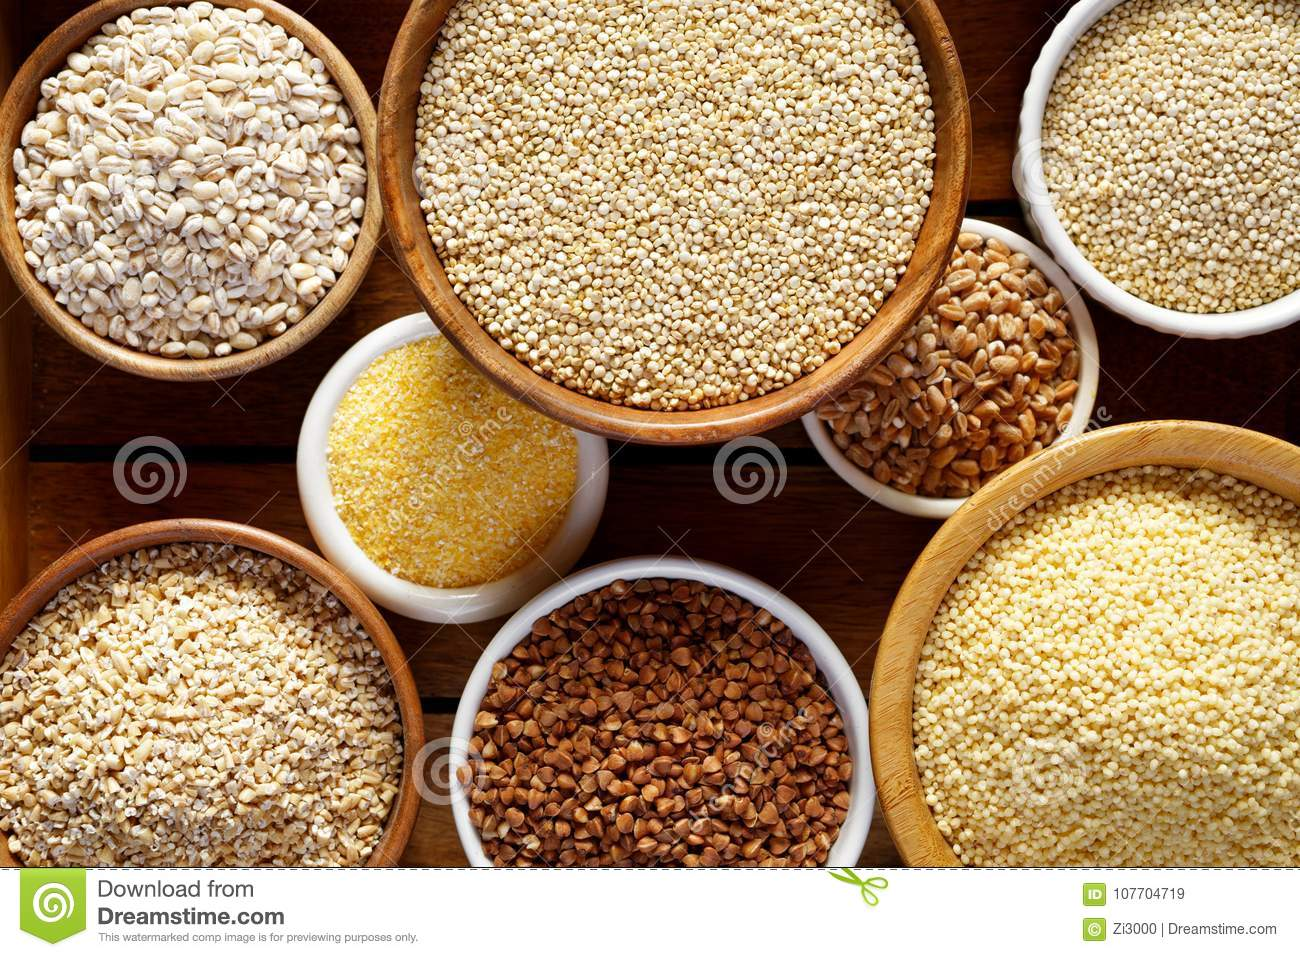 Various groats, cereals. Different types of groats in bowls on a wooden background, top view, close up.